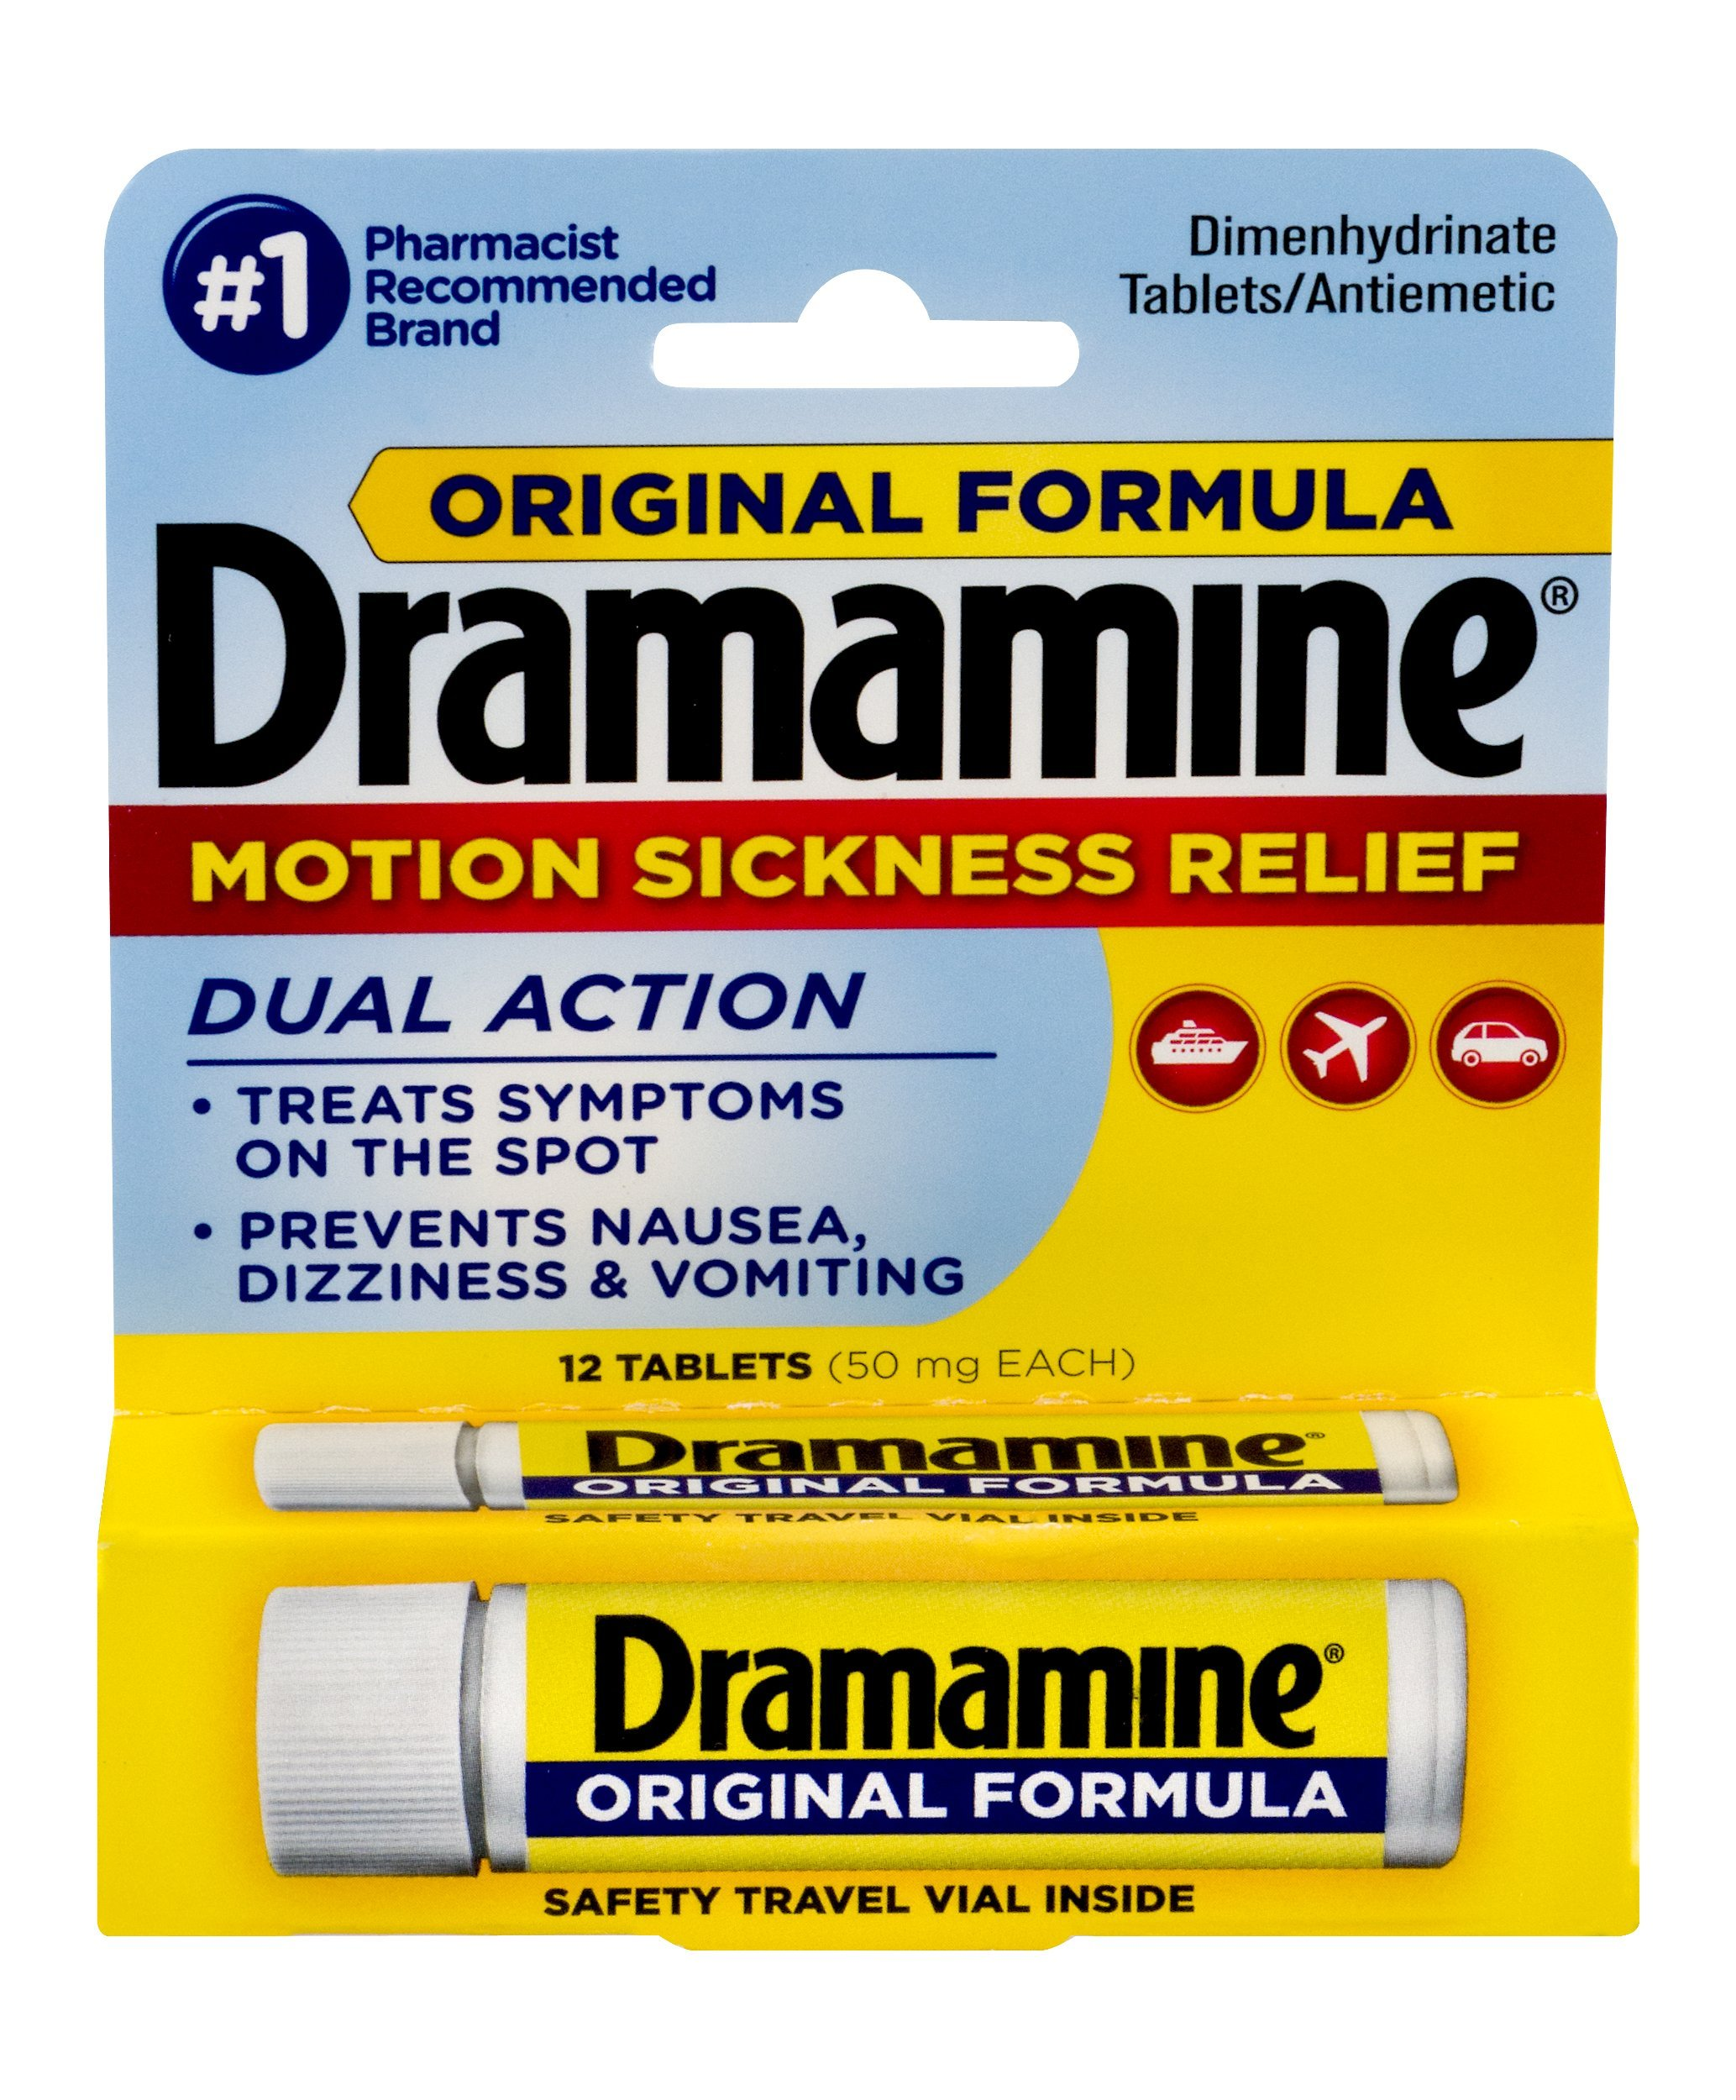 Dramamine Original Formula Motion Sickness Relief, 12 Count,  Pack of 6 by Dramamine